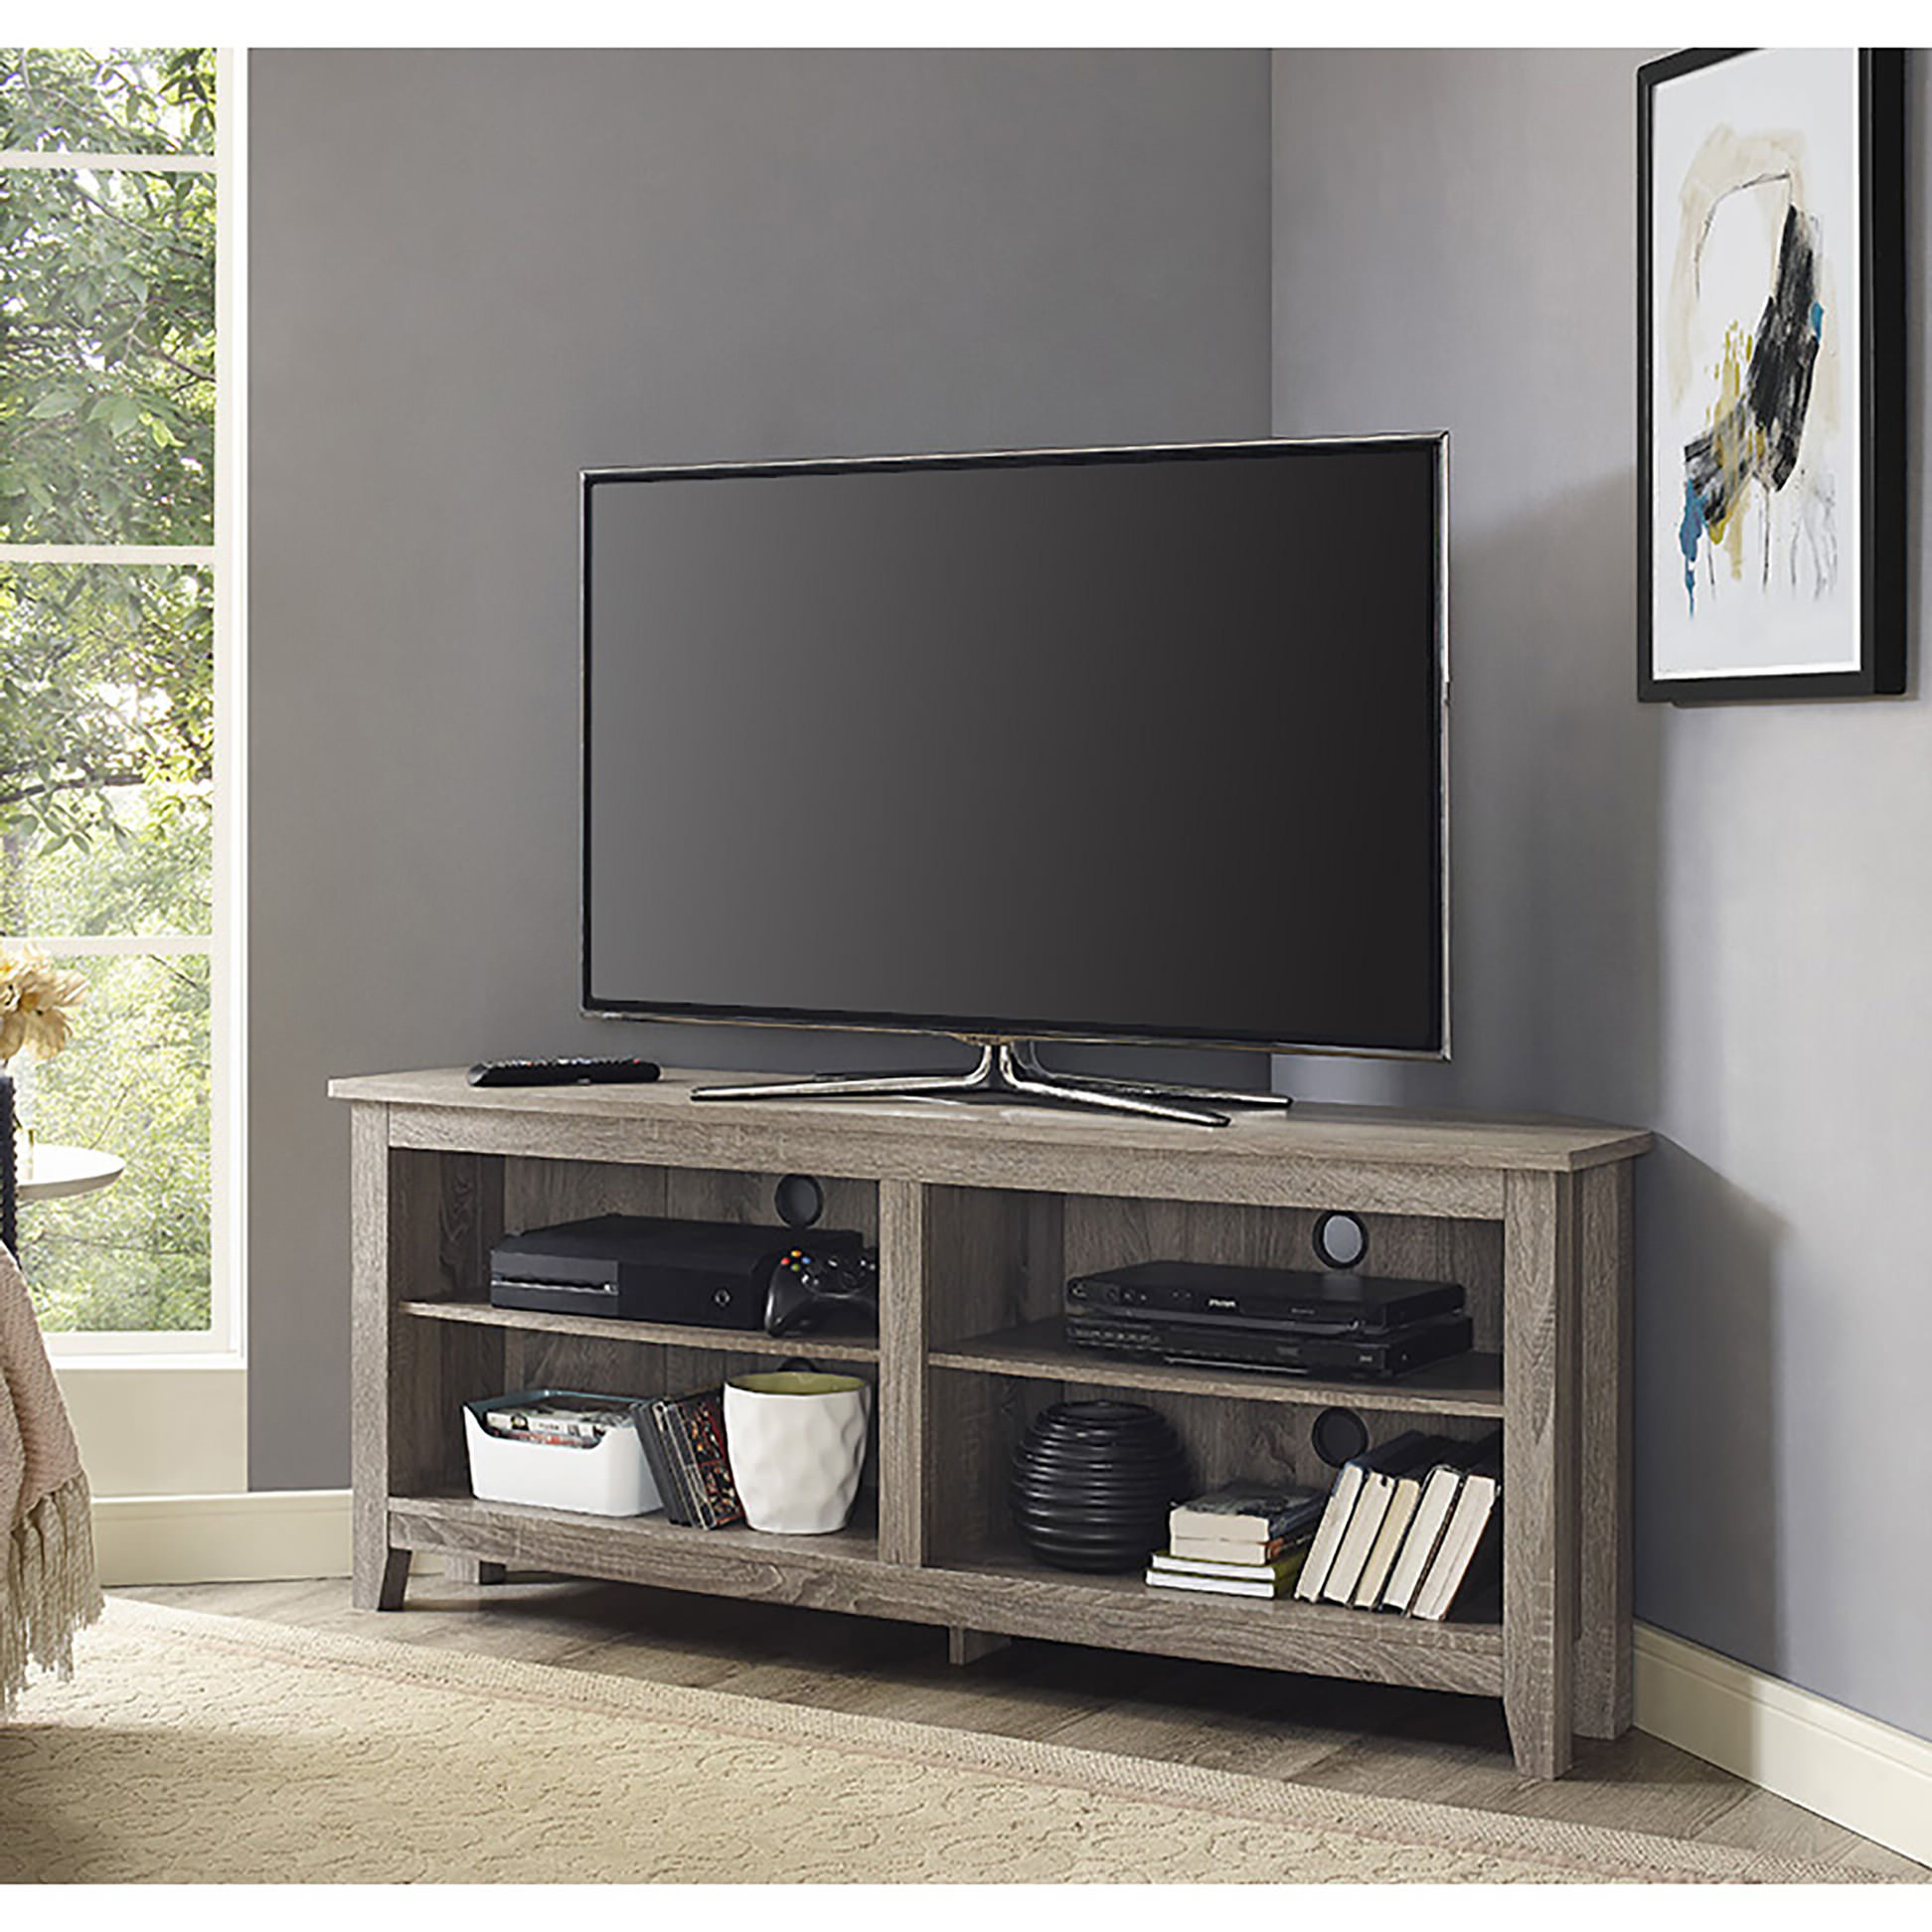 Famous Cordoba Tv Stands With Regard To 58 Inch Corner Tv Stand – Driftwoodwalker Edison (View 13 of 20)